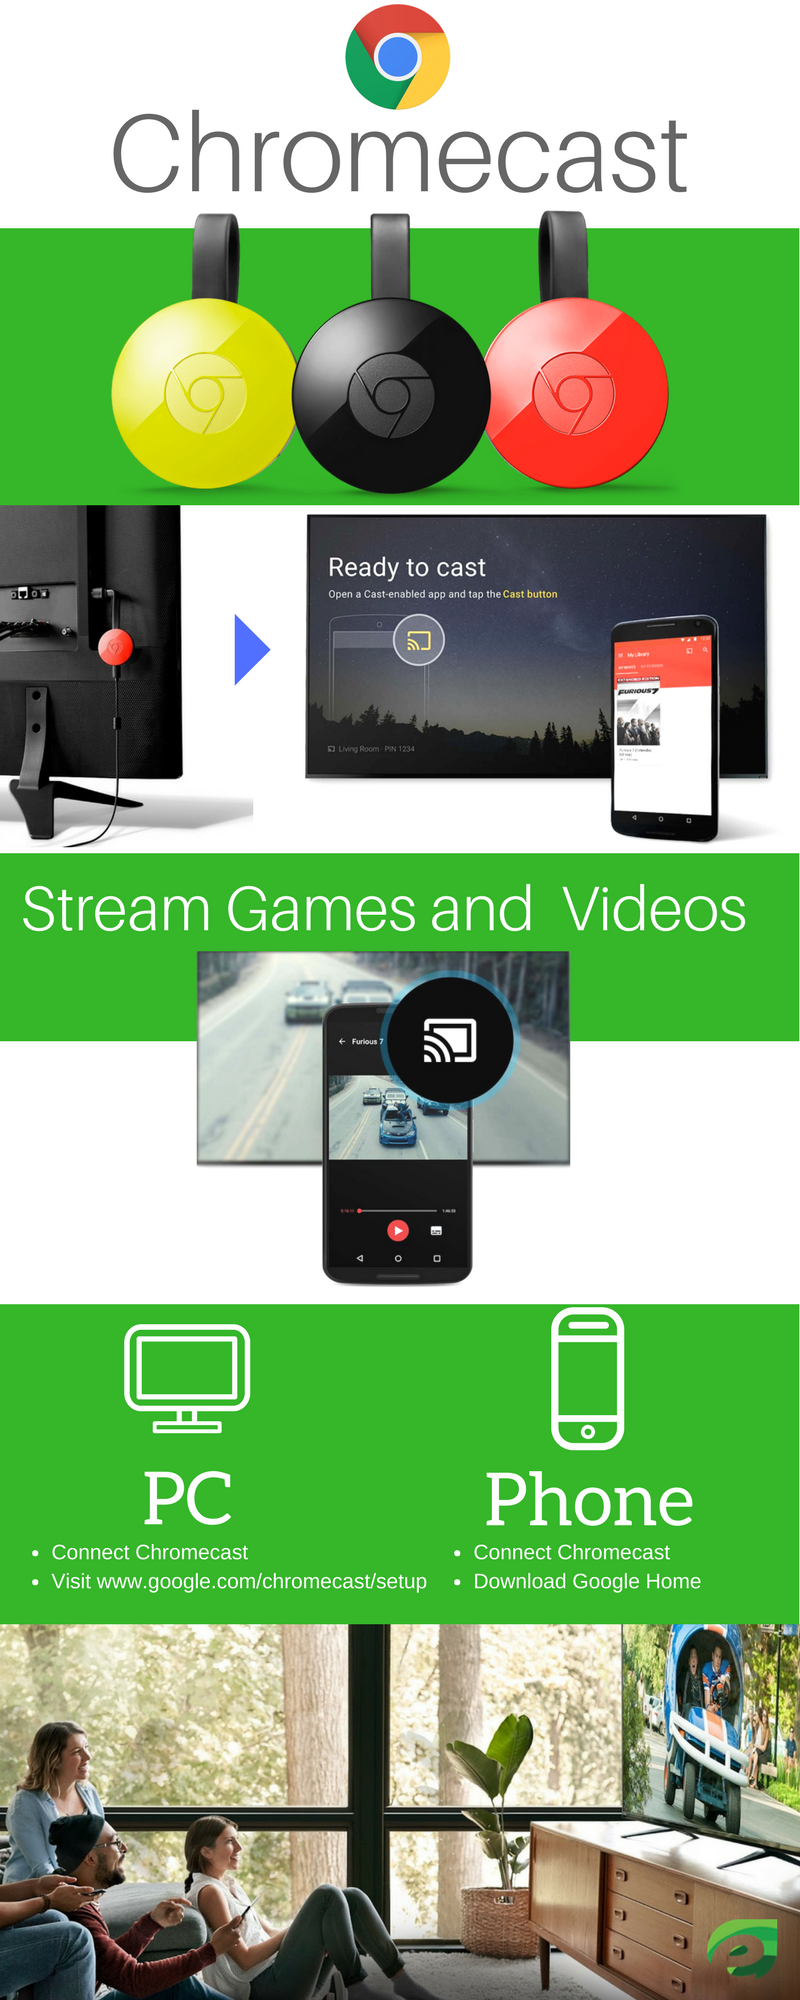 Does Chromecast Work In Mobile Home